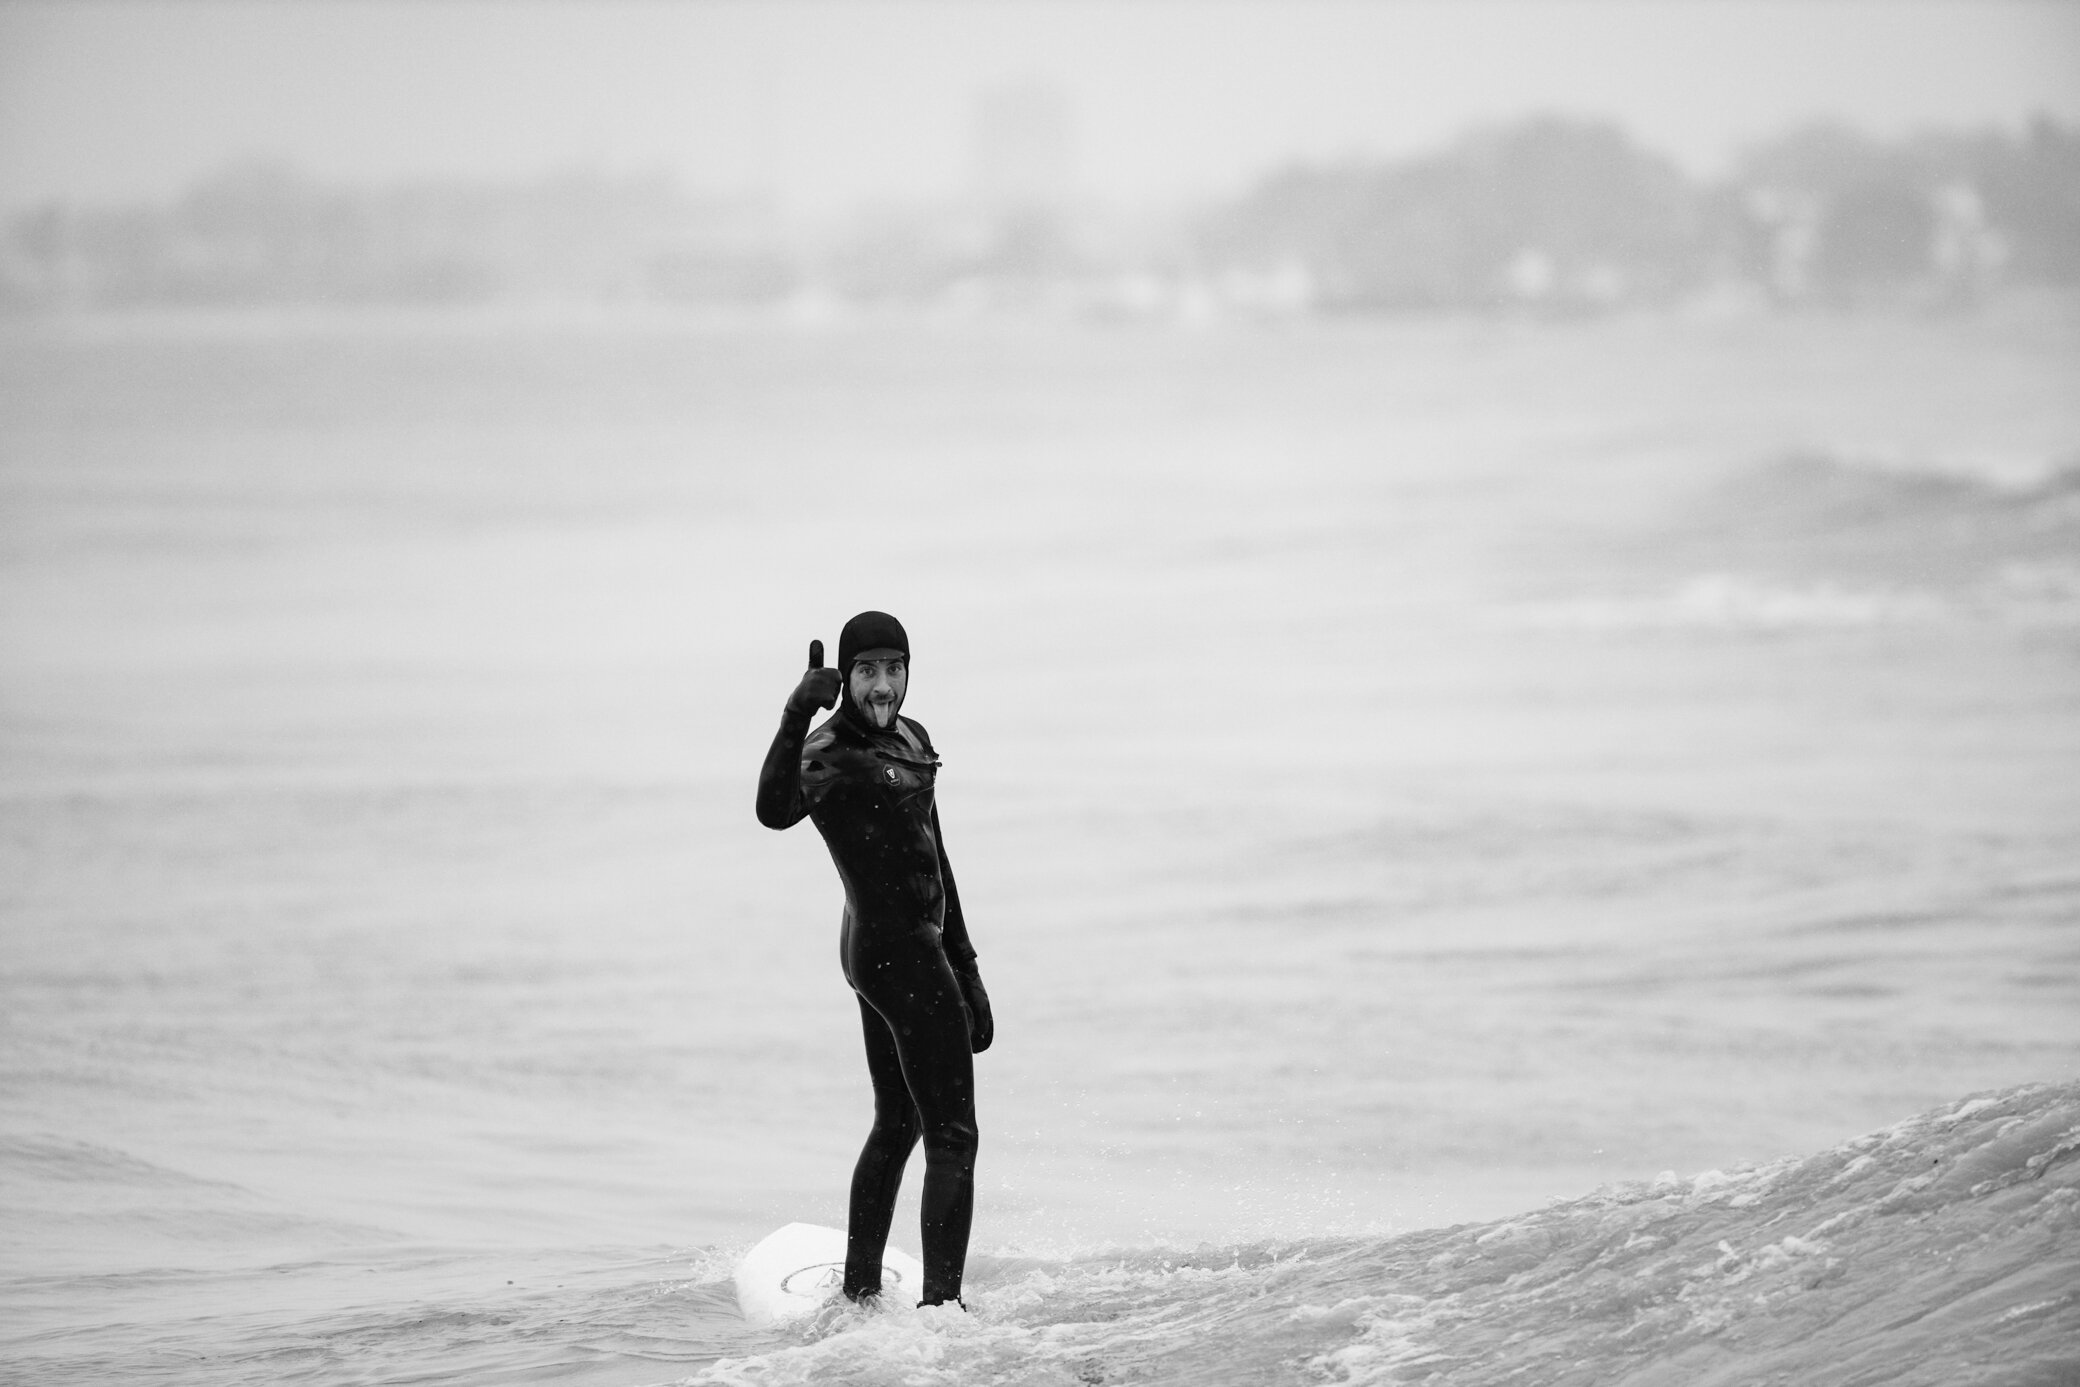 Jake Bresette, owner of Lake Effect Surf Shop….. he is the one that invites me out and he posed for this shot as he spotted me getting soaked on the rocks.